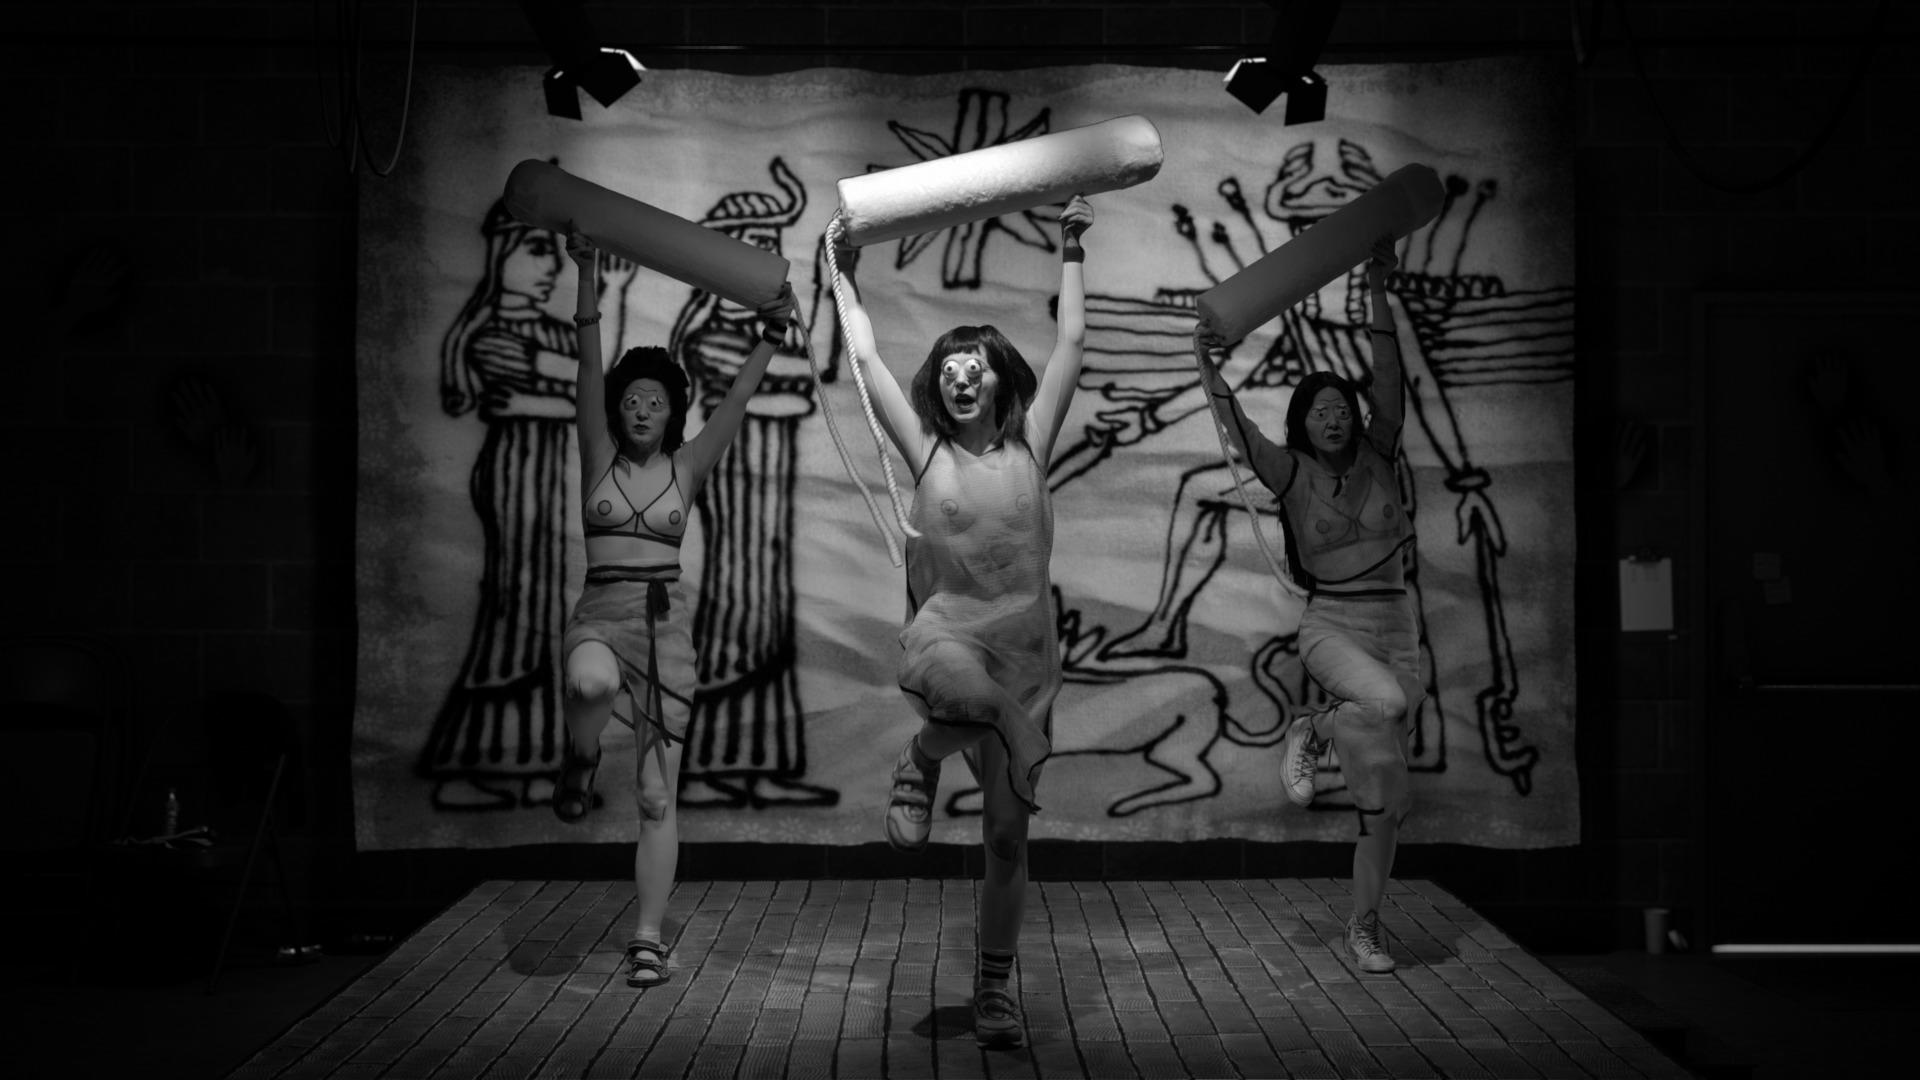 A clip from The Rape of Europa film with three women dancing with columns.